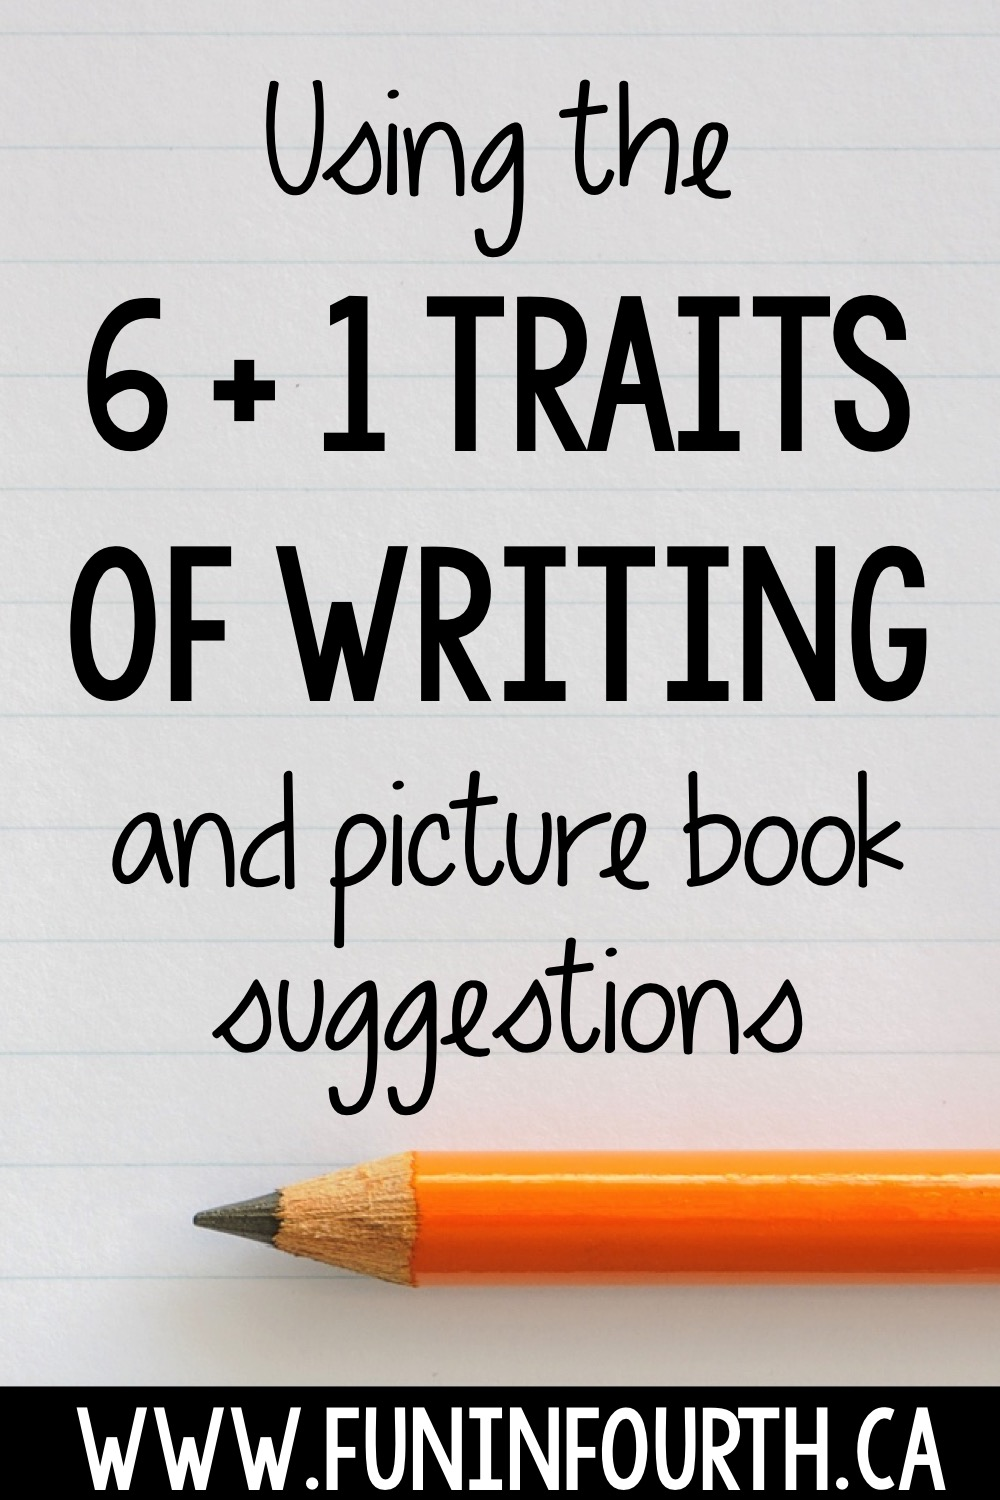 6 plus one traits of writing The 6 researched components of all good writing (ideas, organization, voice, word choice, sentence fluency, and conventions) need to be introduced in a kid-friendly way.